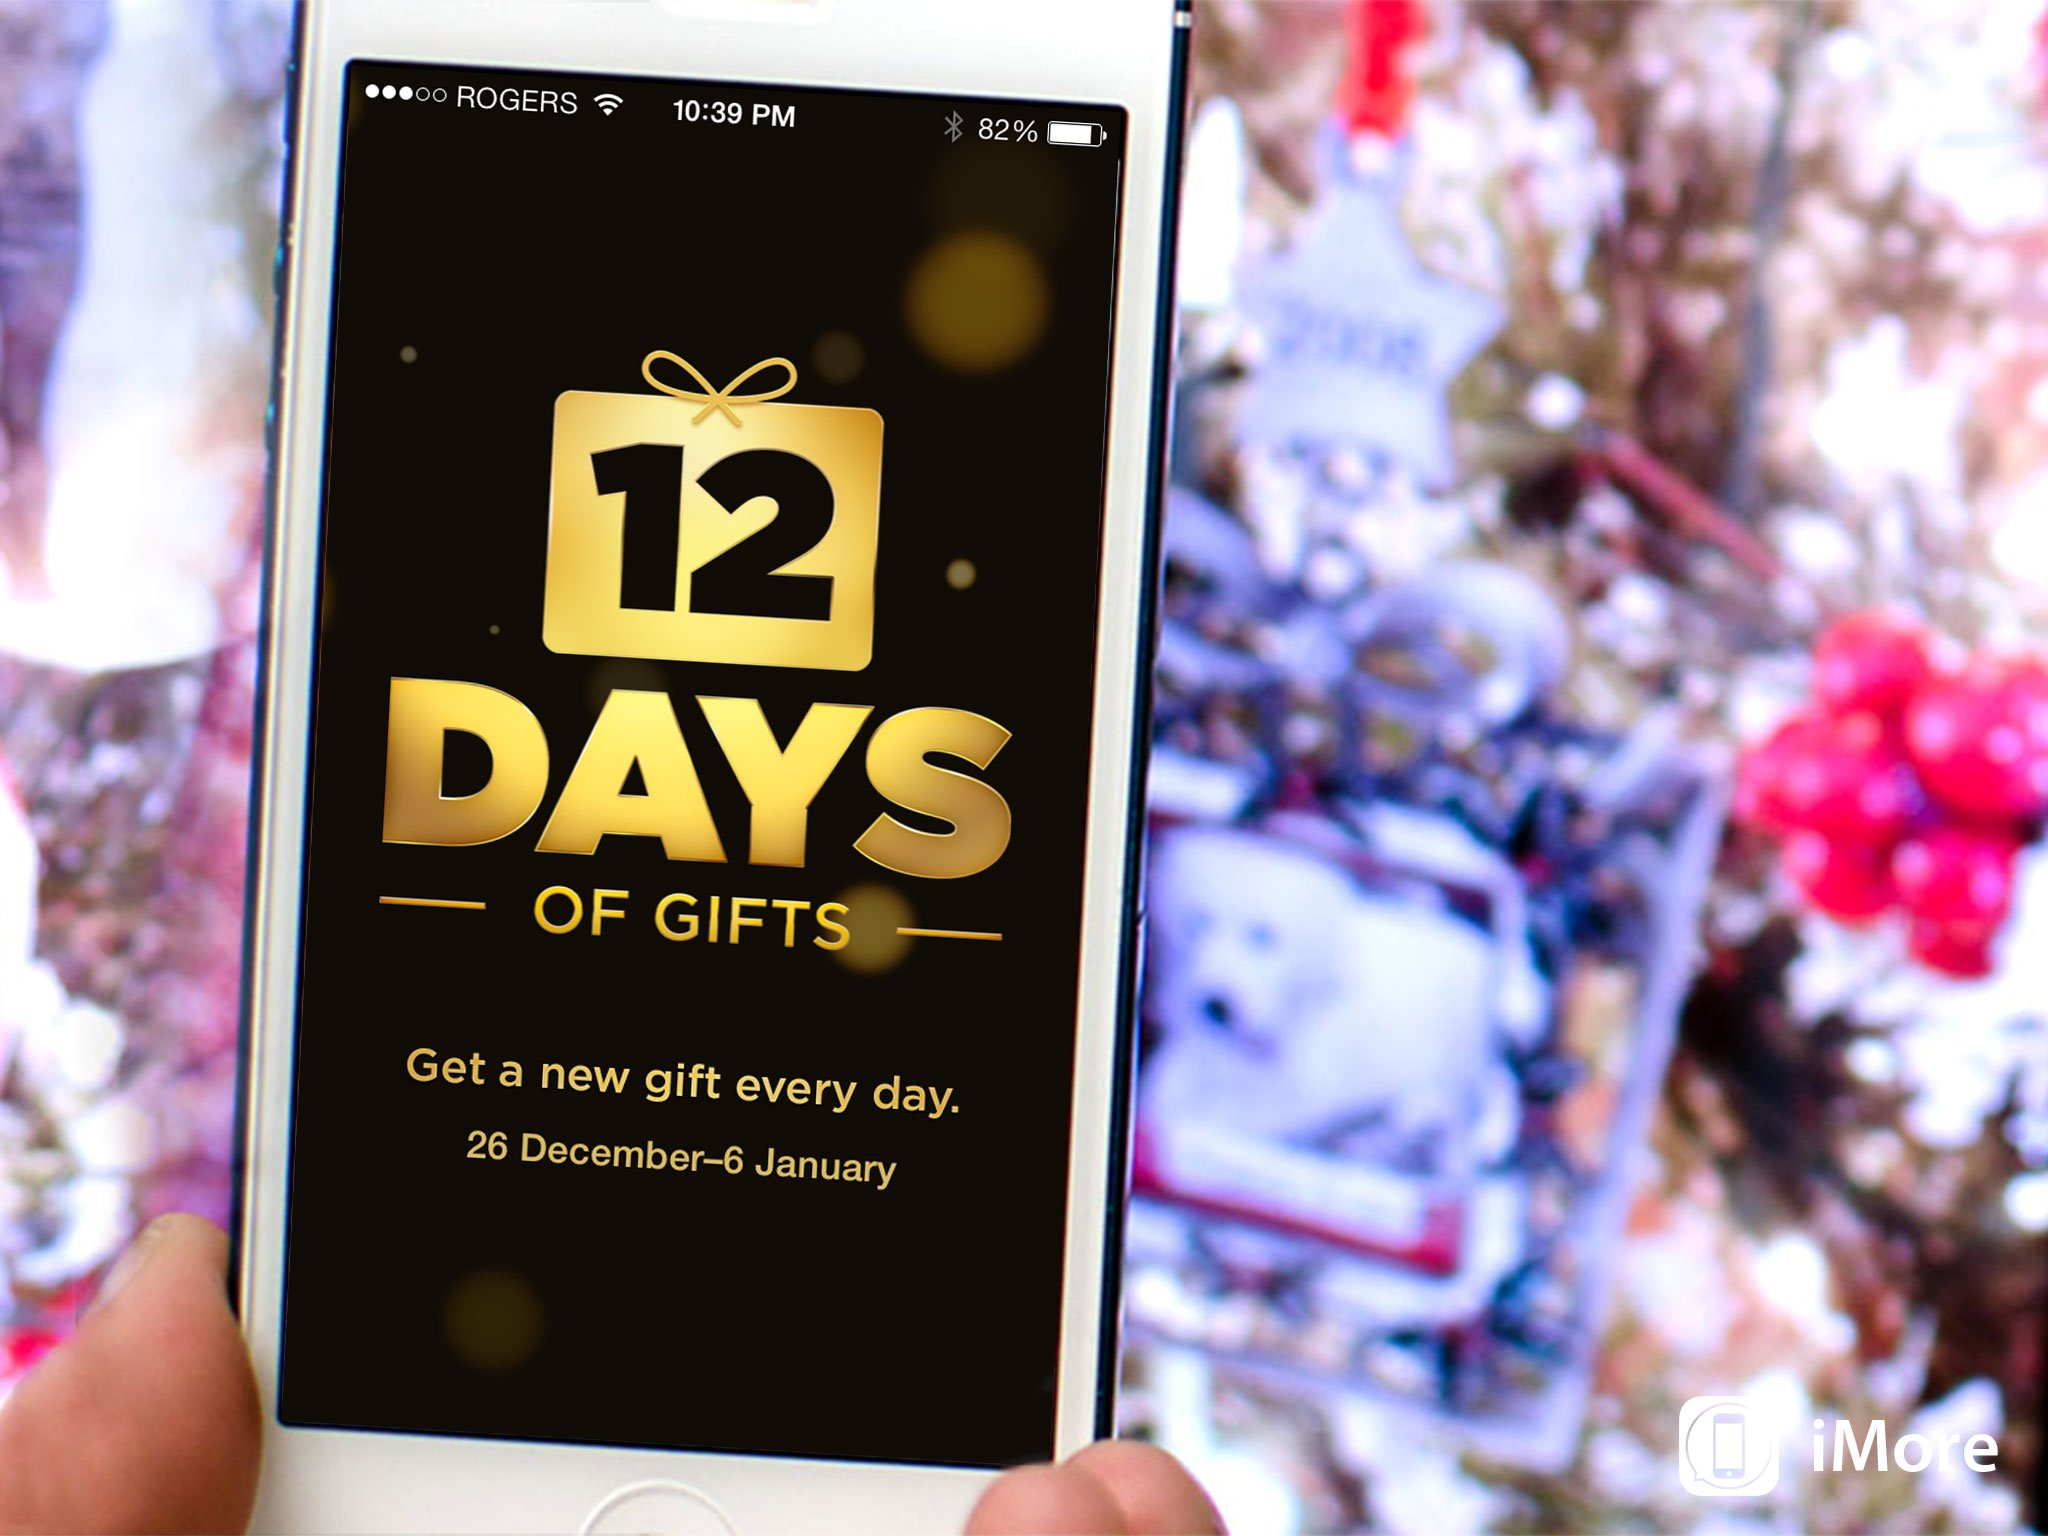 Apple releases 12 Days of Gifts app for iPhone and iPad, will give you free apps, iBooks, movie rentals, TV episodes from December 26 to January 6